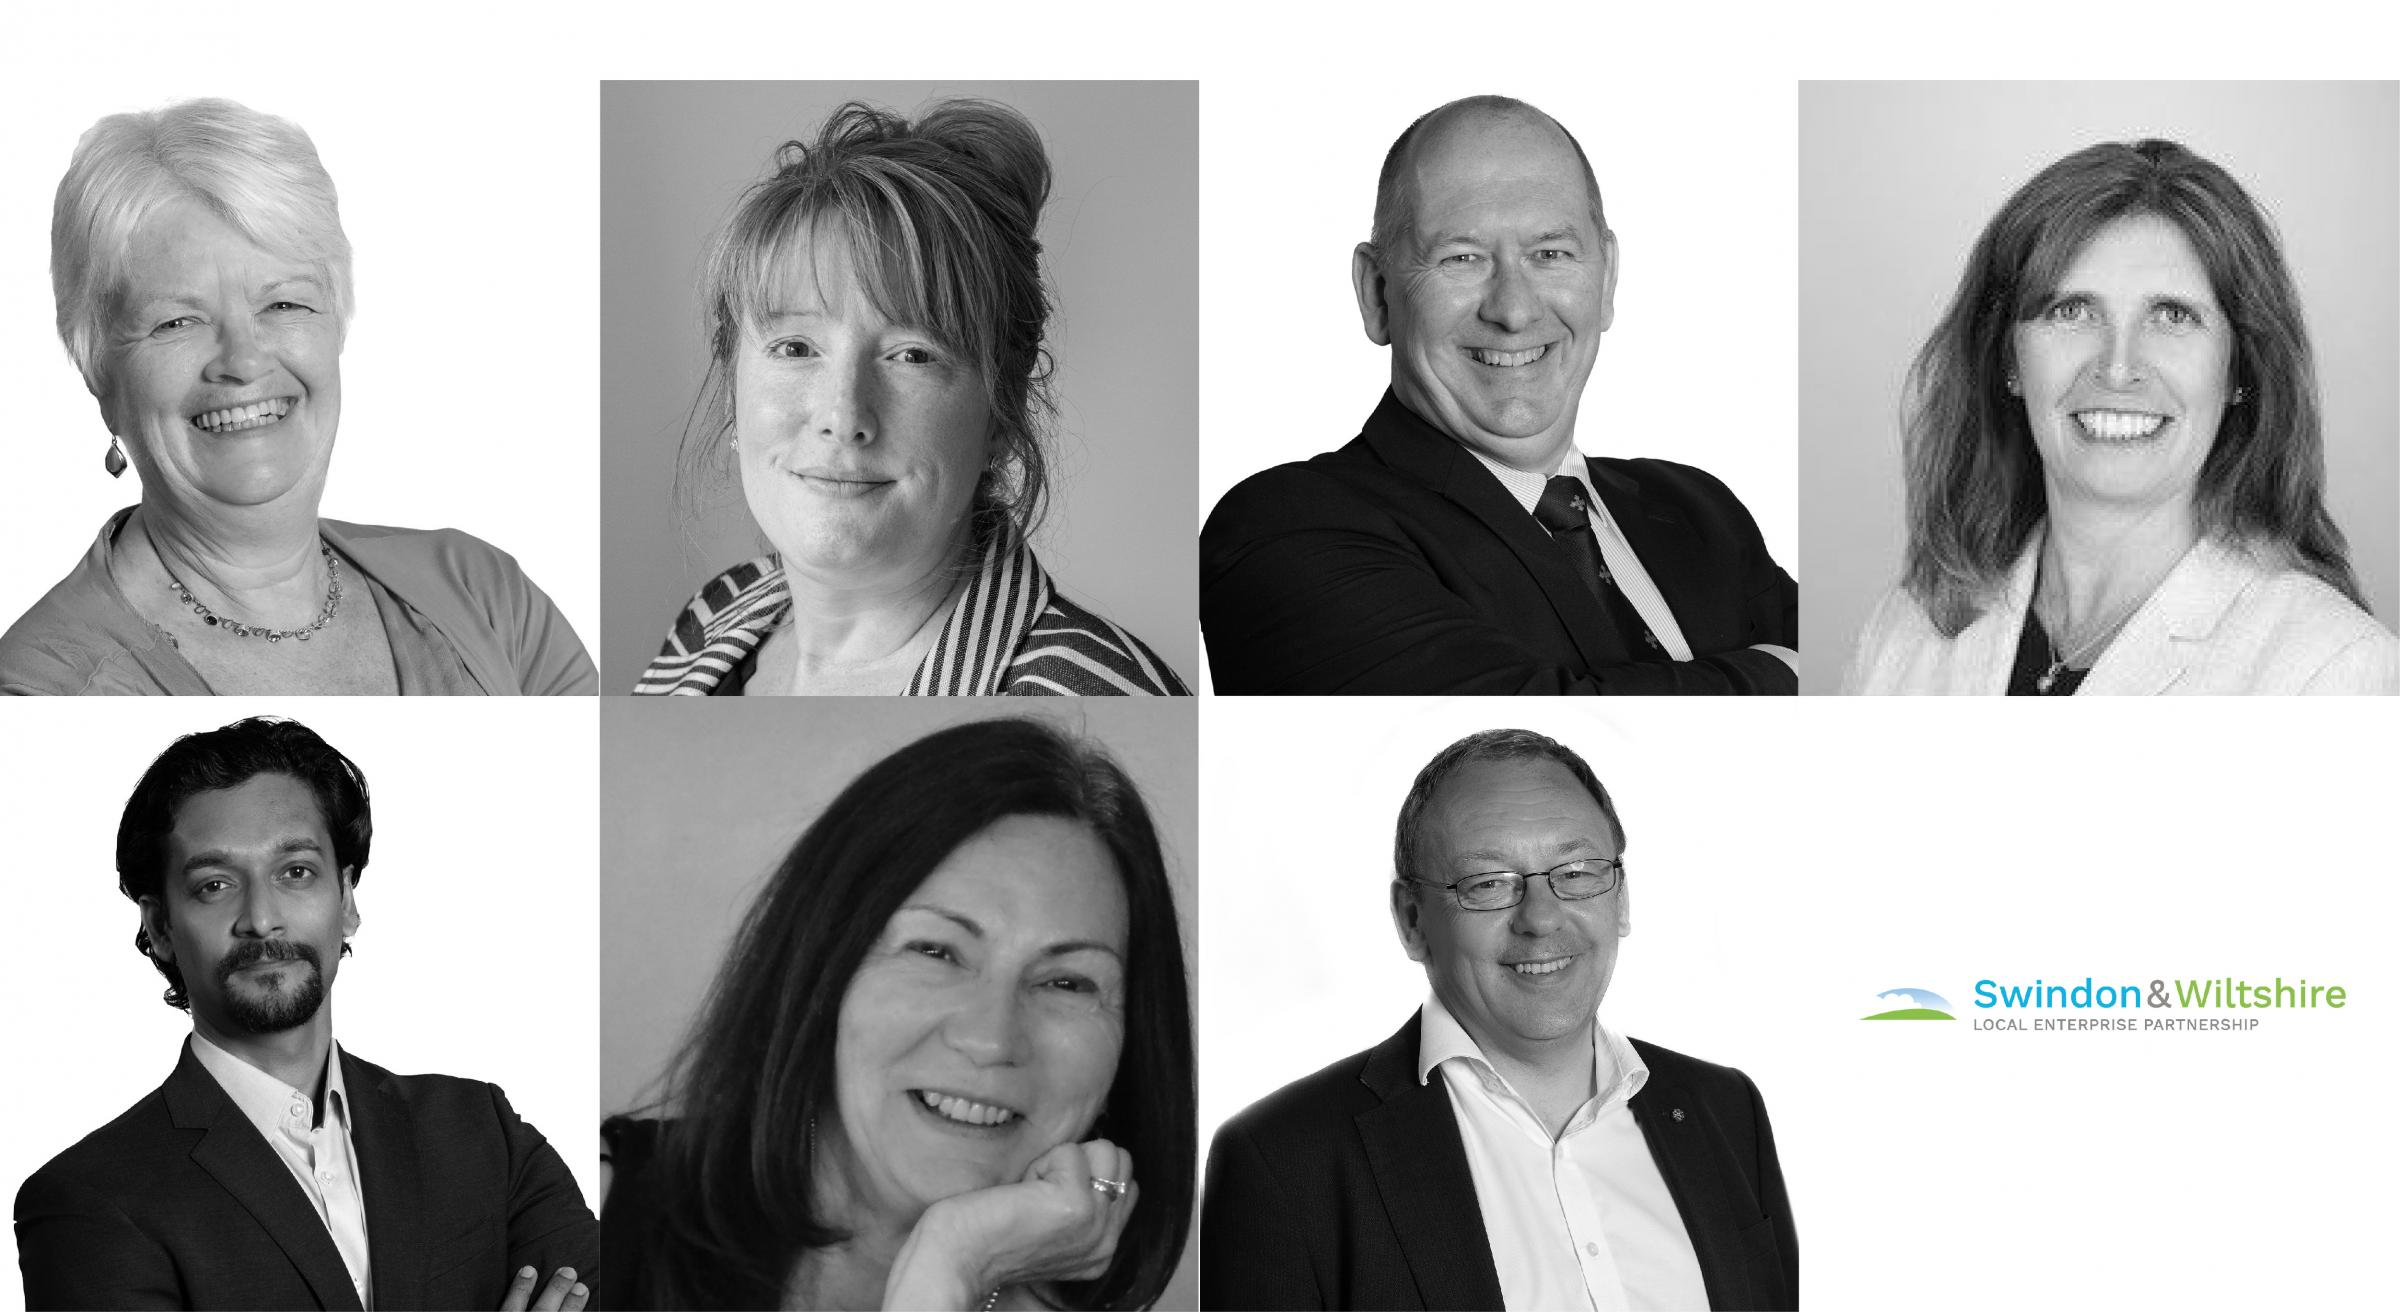 Swindon and Wiltshire Local Enterprise Partnership appoints new board directors